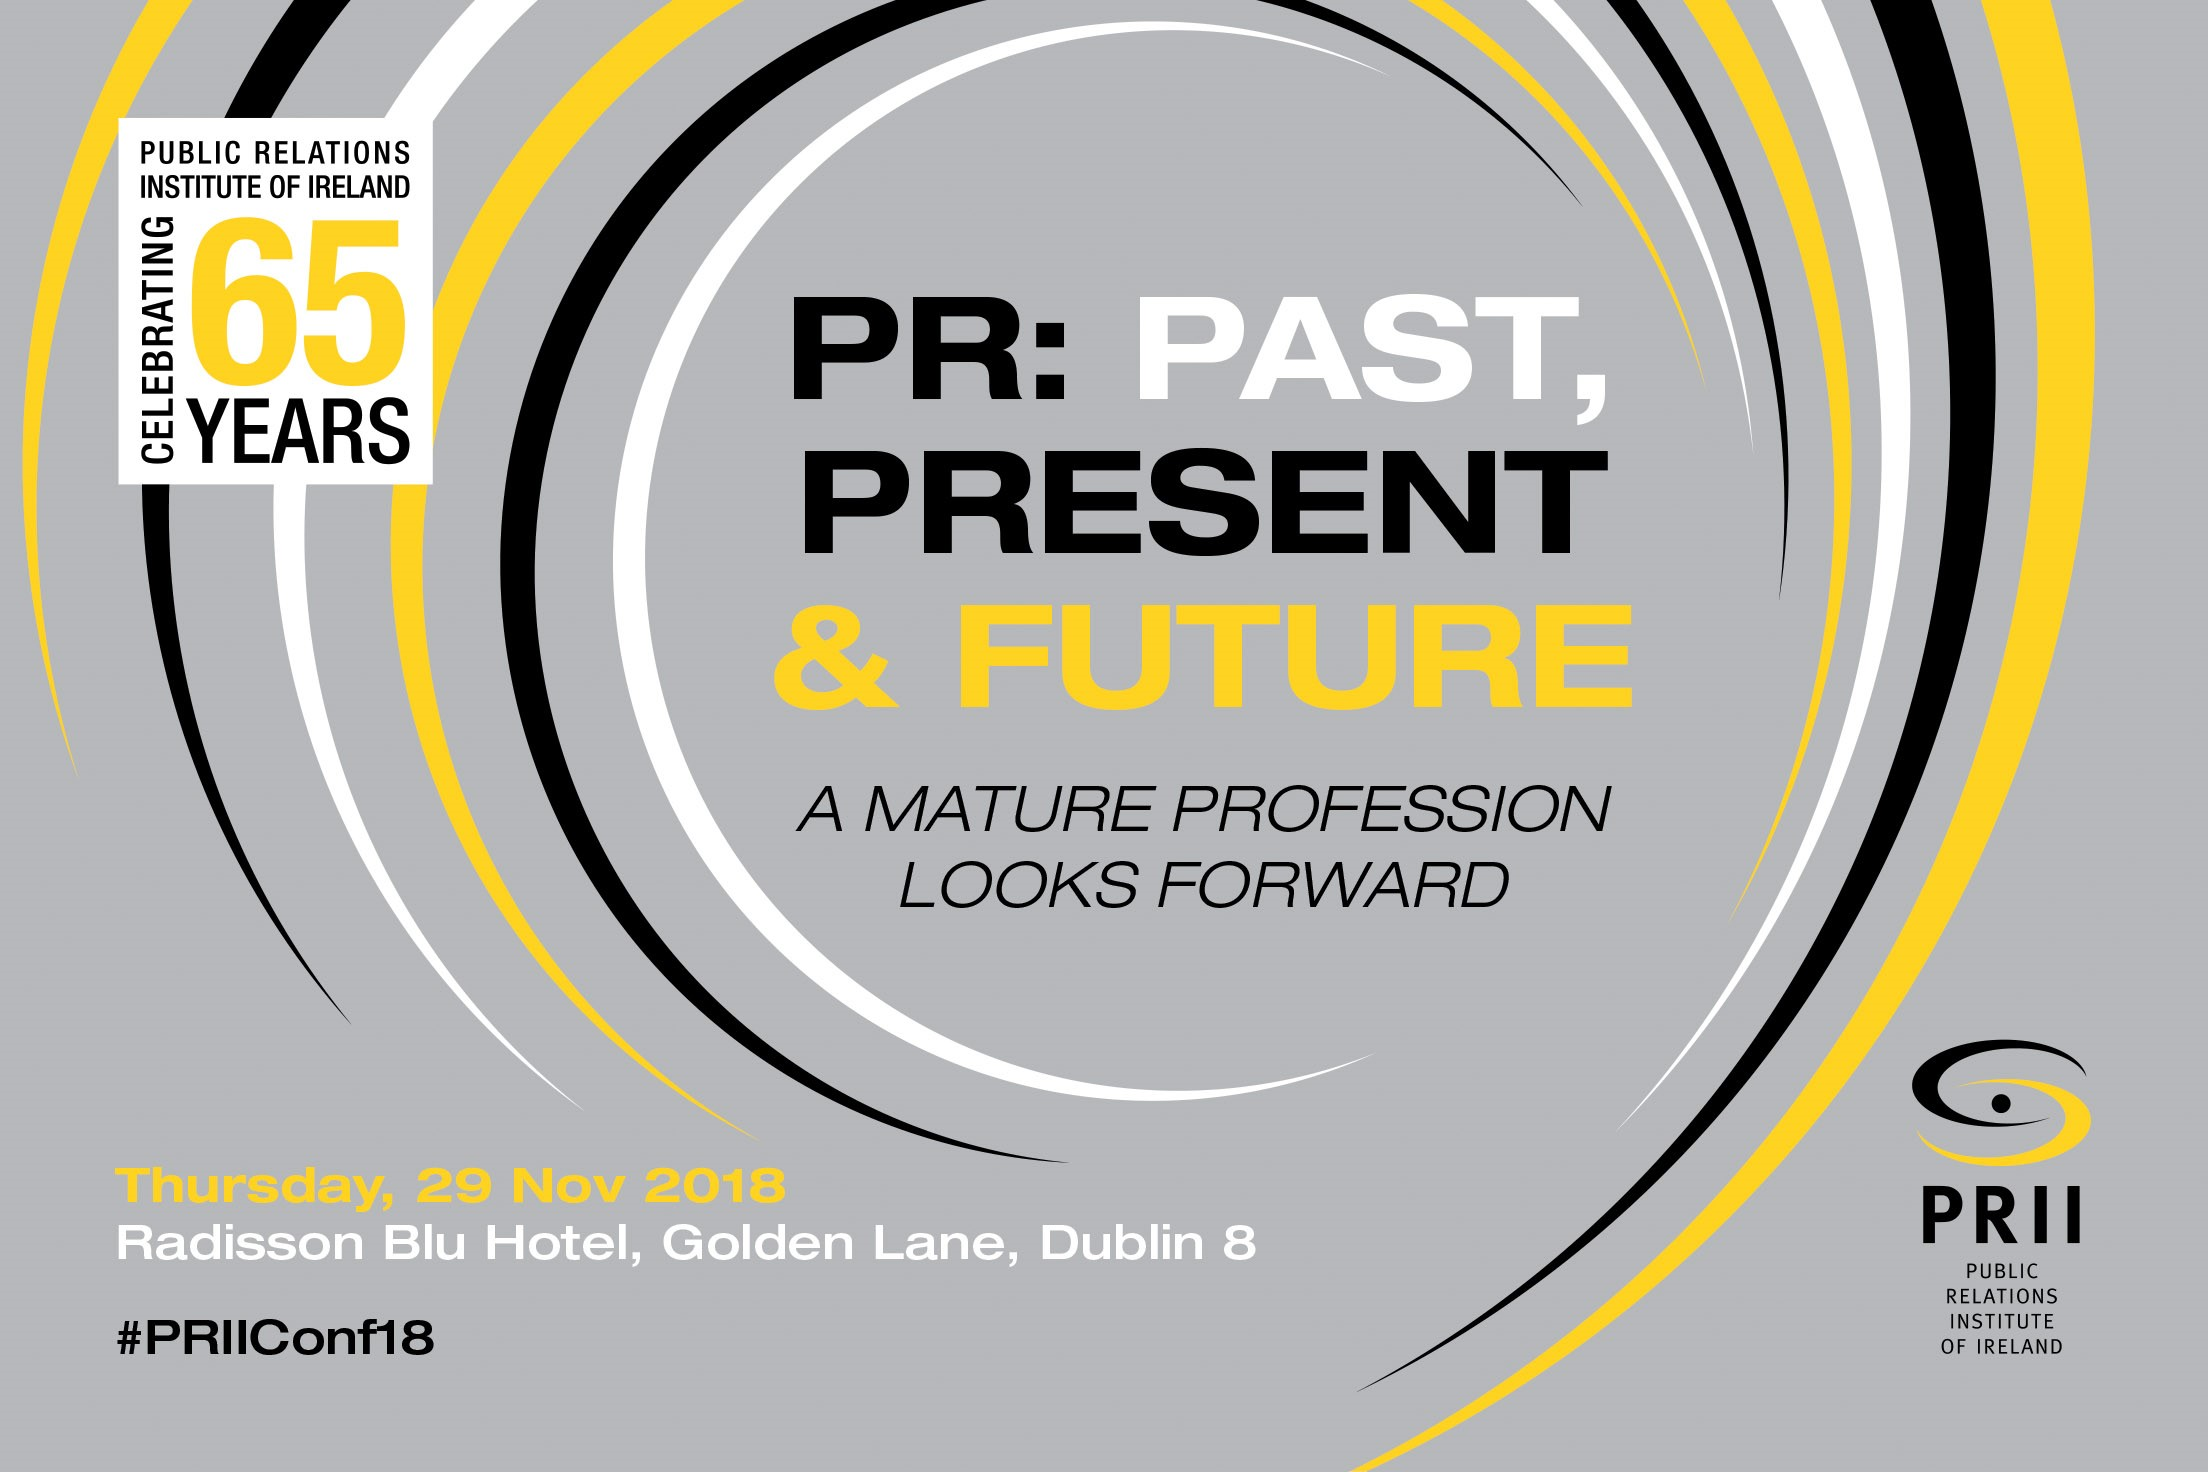 PR: Past, Present & Future - 2018 PRII Annual Conference Thursday, 29 November, Radisson Blu Hotel, Golden Lane, Dublin 8